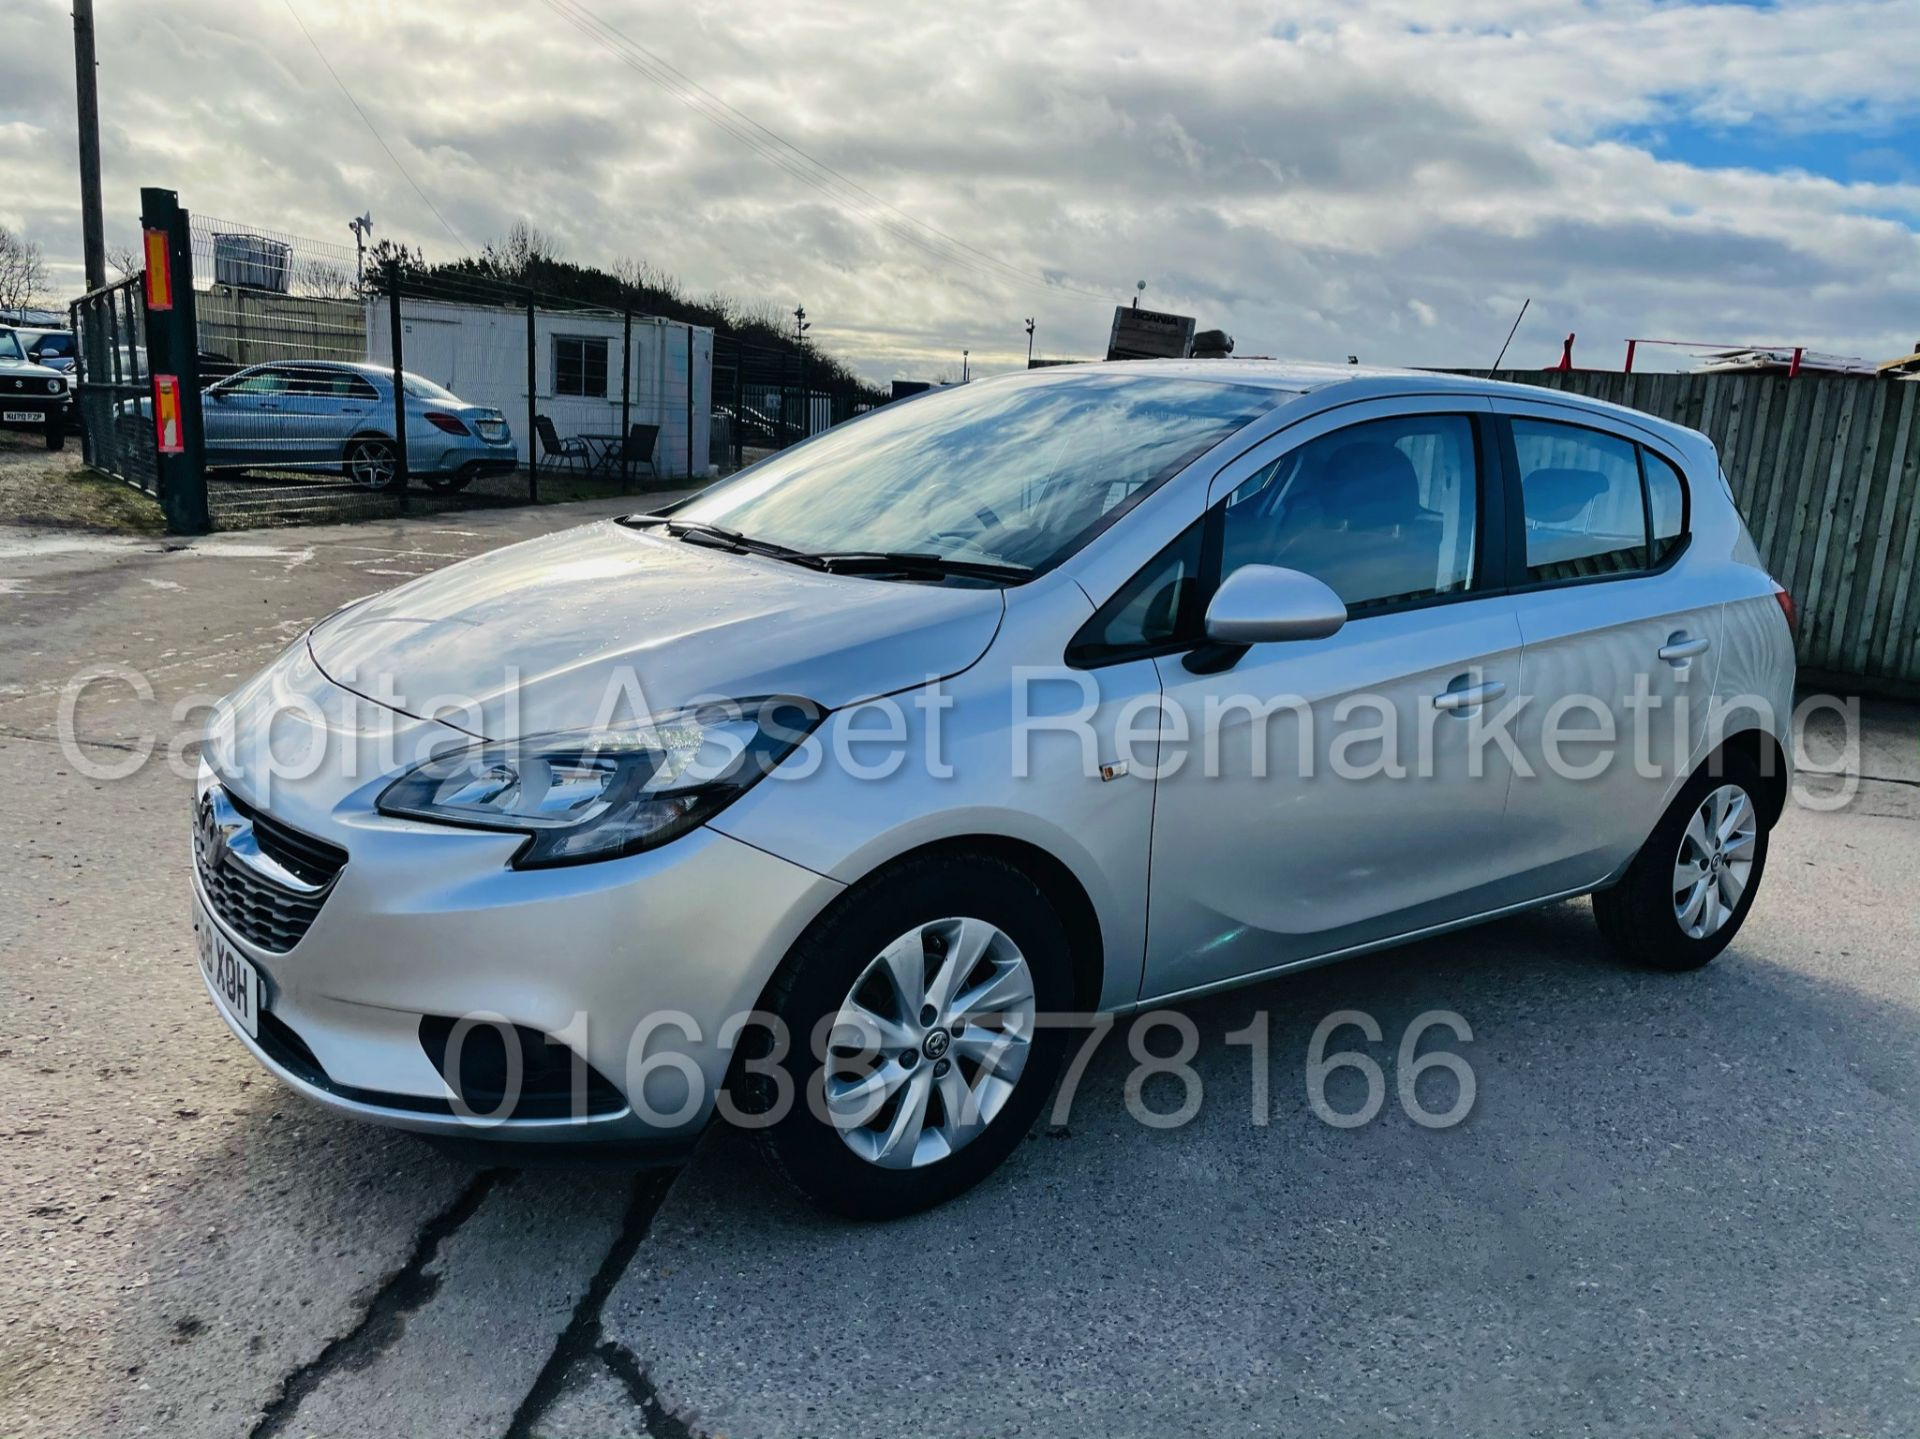 On Sale VAUXHALL CORSA *DESIGN EDITION* 5 DOOR HATCHBACK (2019 - NEW MODEL) 1.4 PETROL - (1 OWNER) - Image 6 of 42